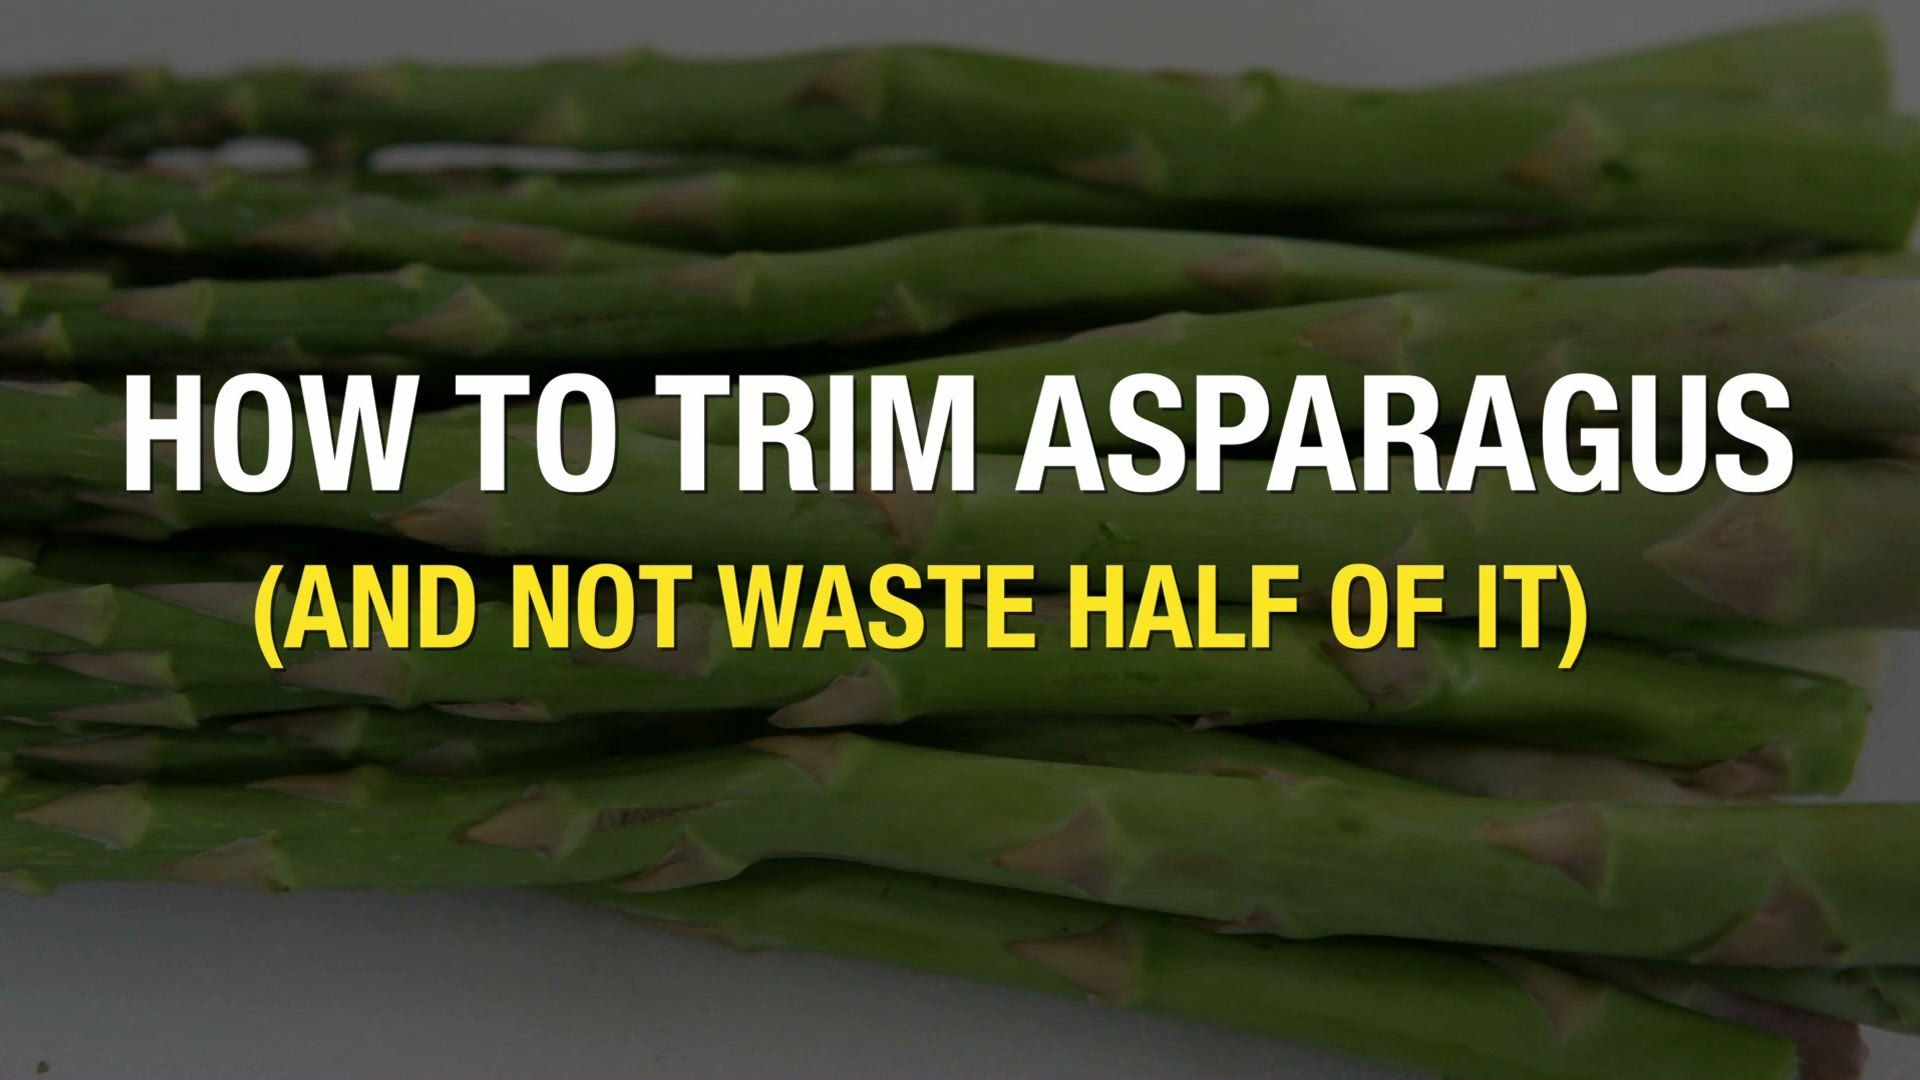 How To Trim Asparagus And Not Waste Half Of It Asparagus Recipe Book Saving Money